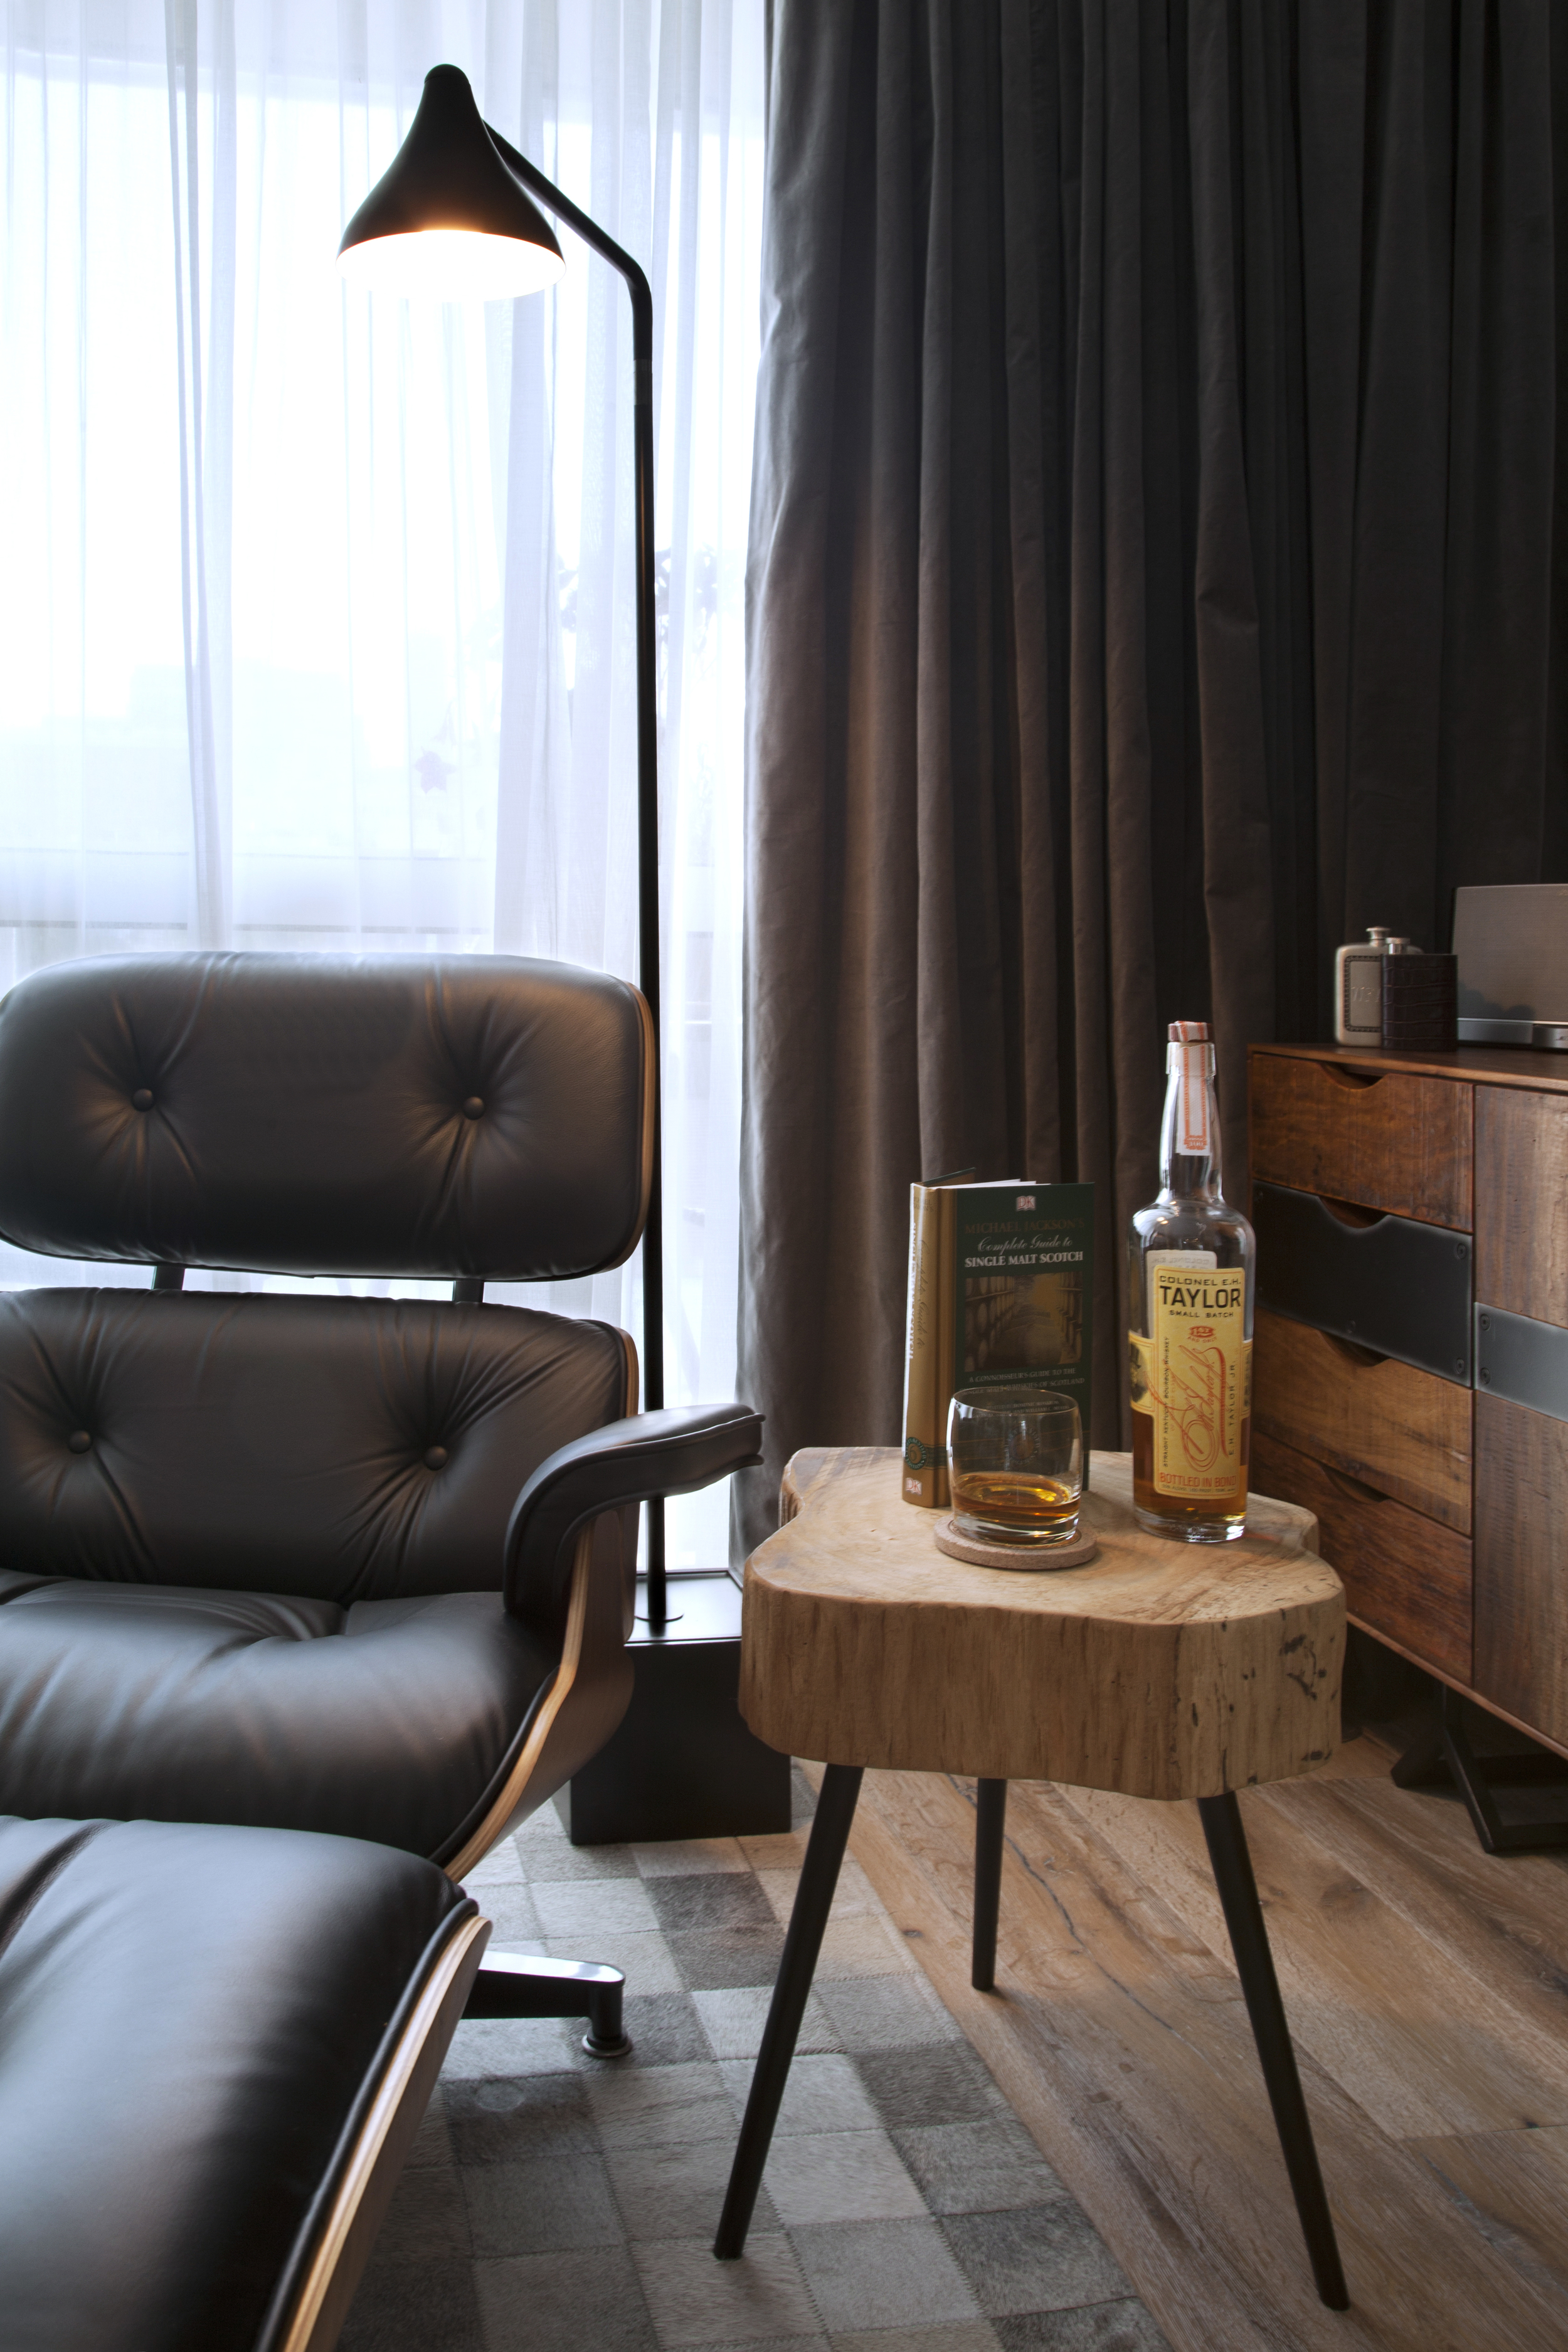 Chaise lounge side table and lamp